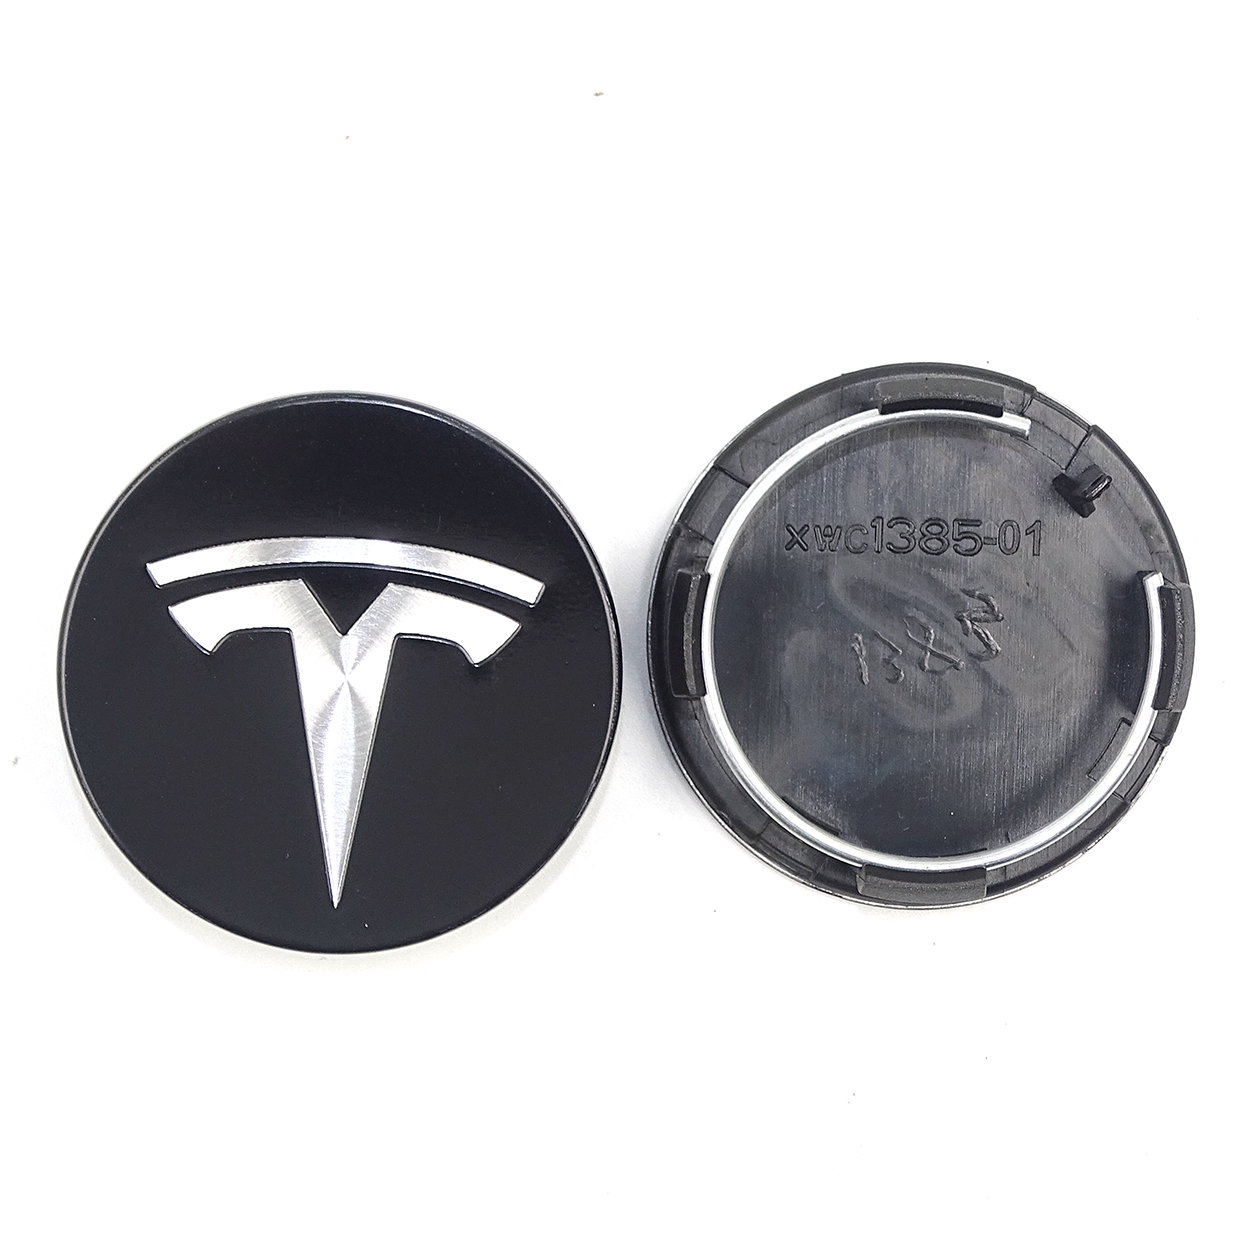 Image 2 - for TESLA MODEL X S 3 car styling XWC1385 01 Auto Accessories 56MM 58MM Badge Wheel Center cap cover emblem-in Wheel Center Caps from Automobiles & Motorcycles